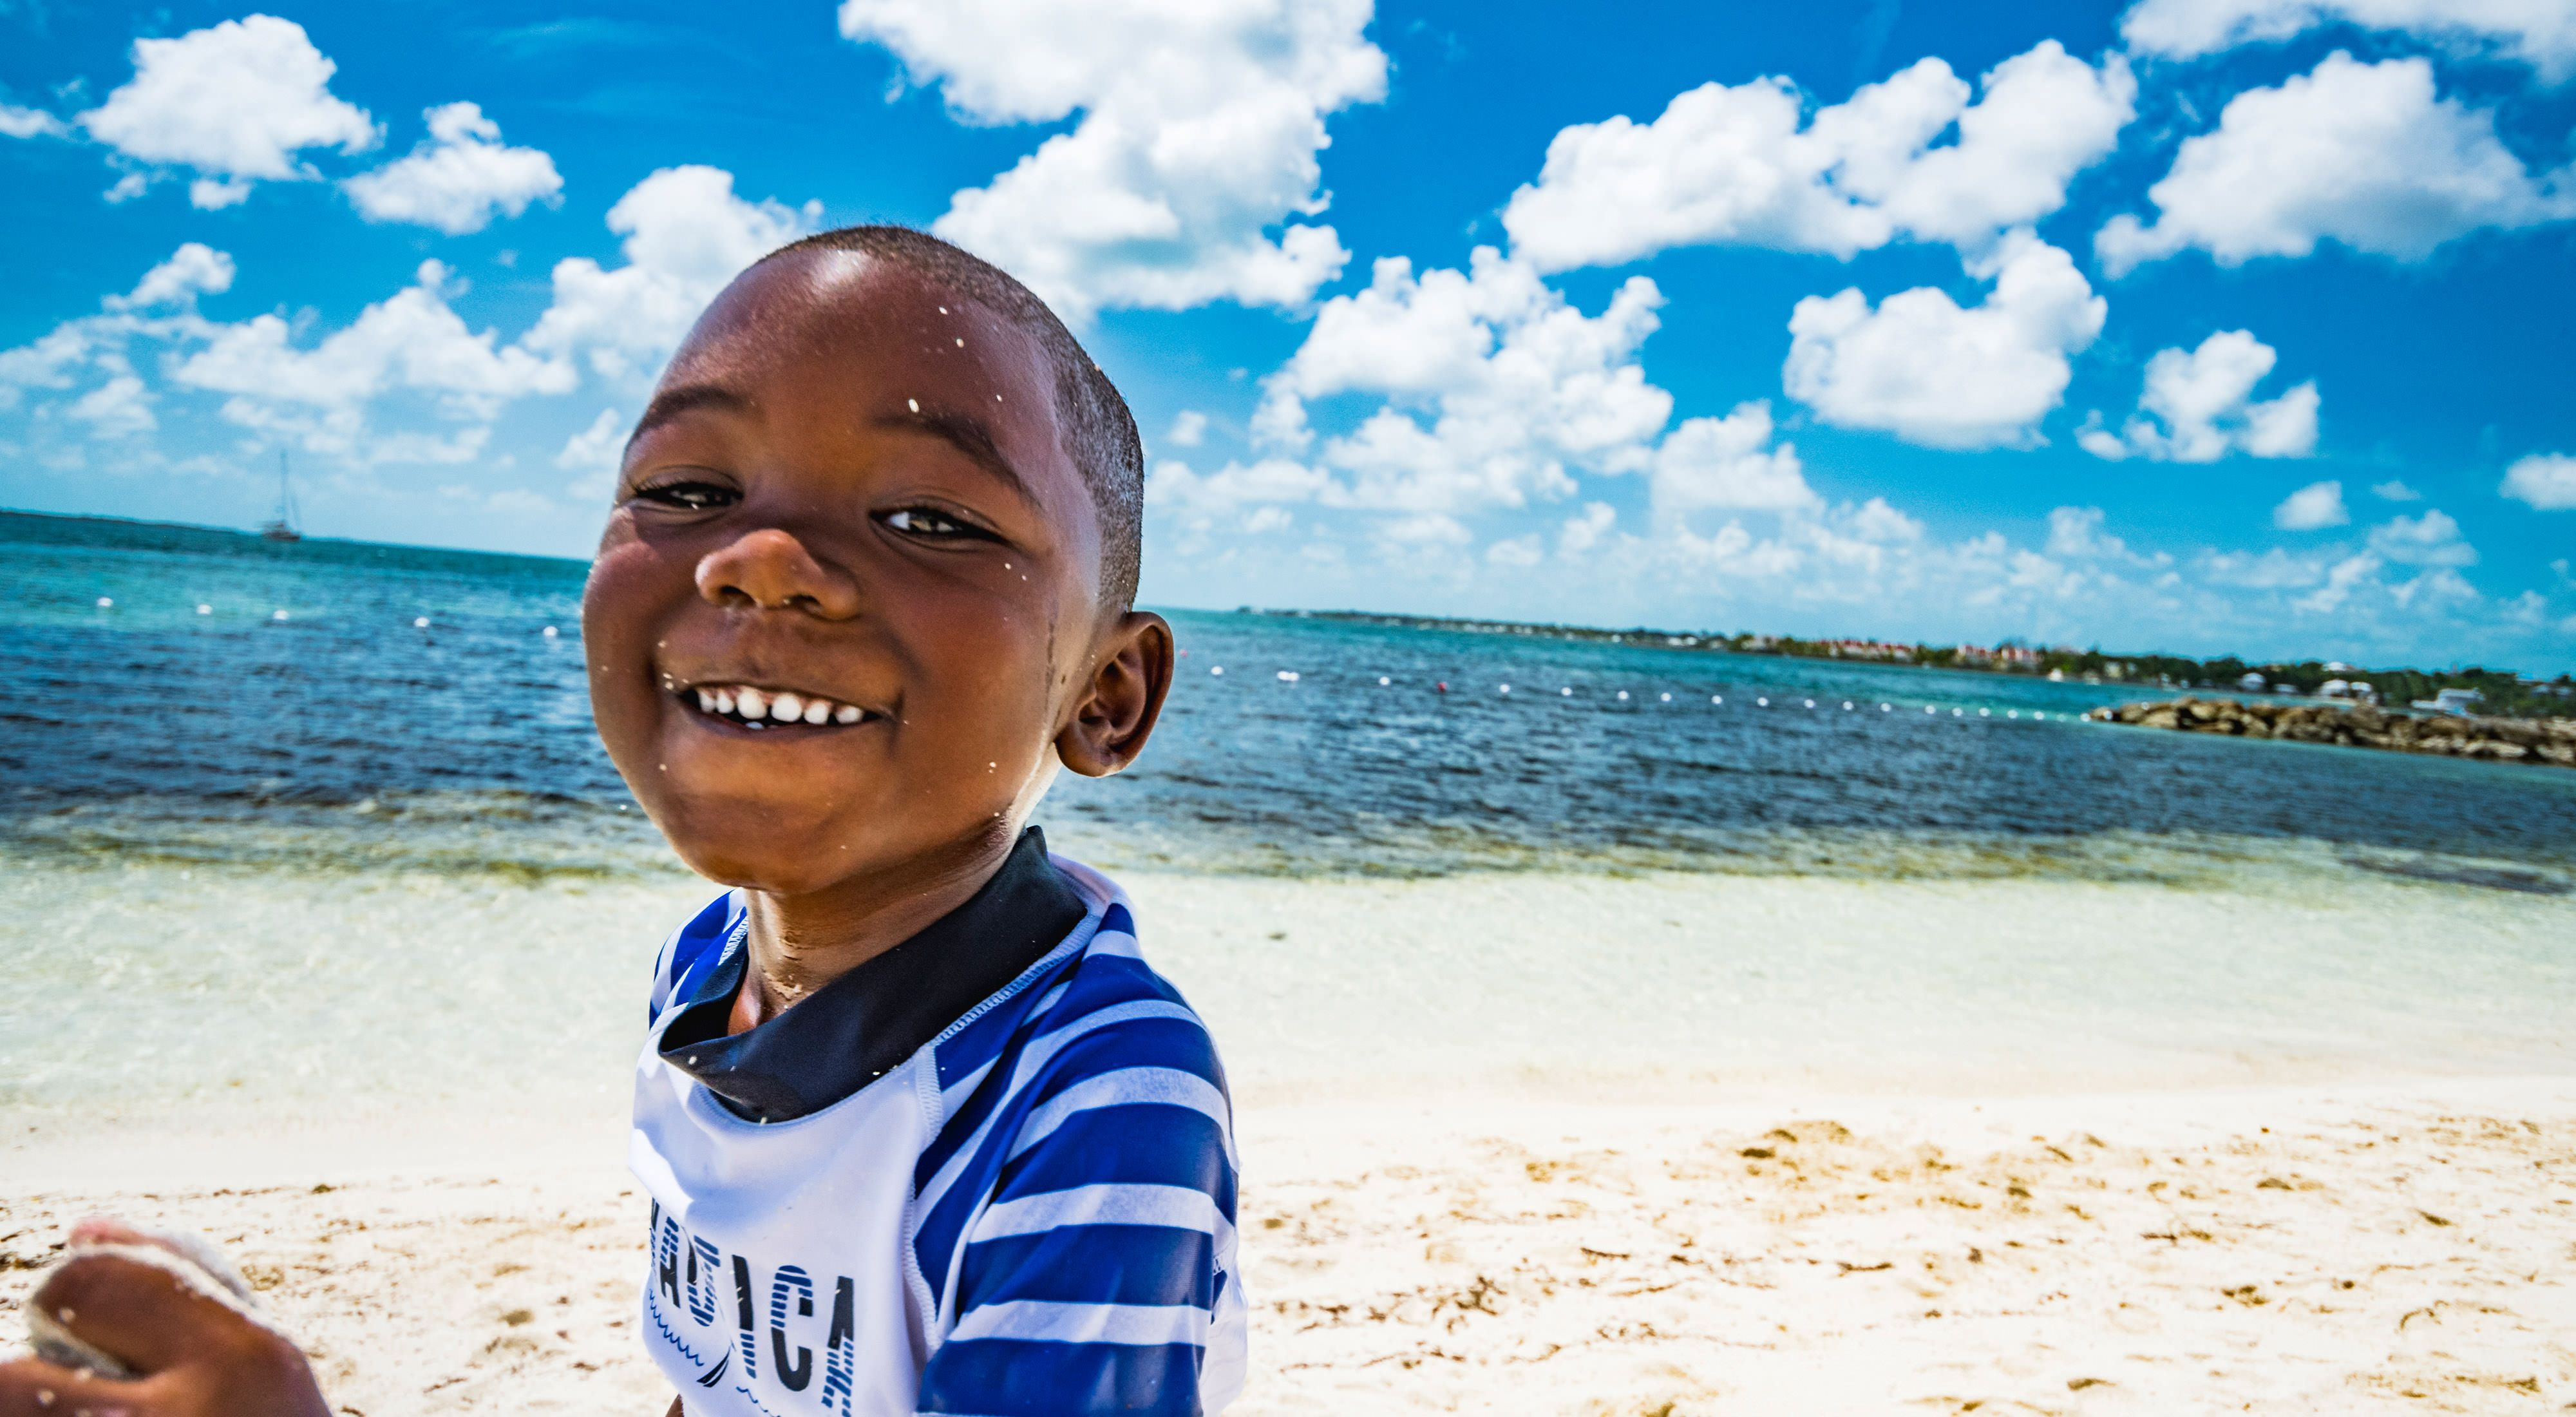 A boy plays on a beach in The Bahamas.